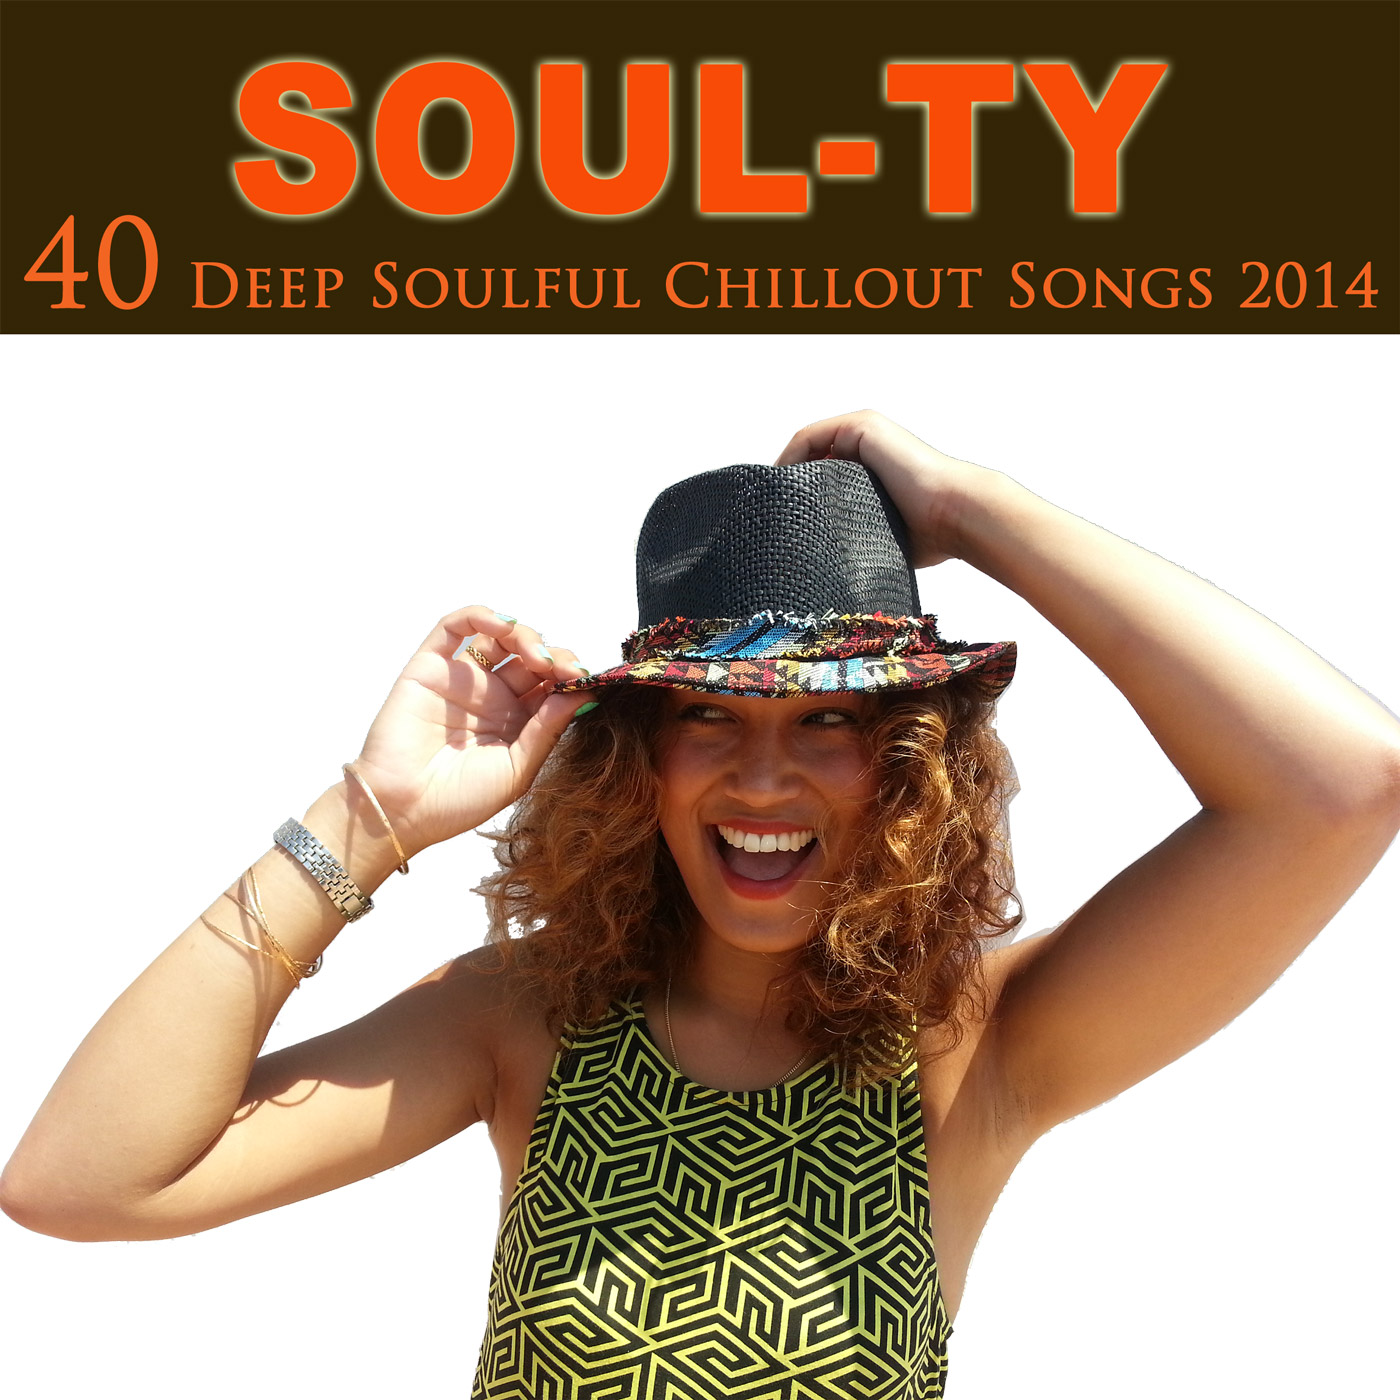 40-Deep-Soulful-Chillout-Songs-2014-Ted-Peters-MF-Records